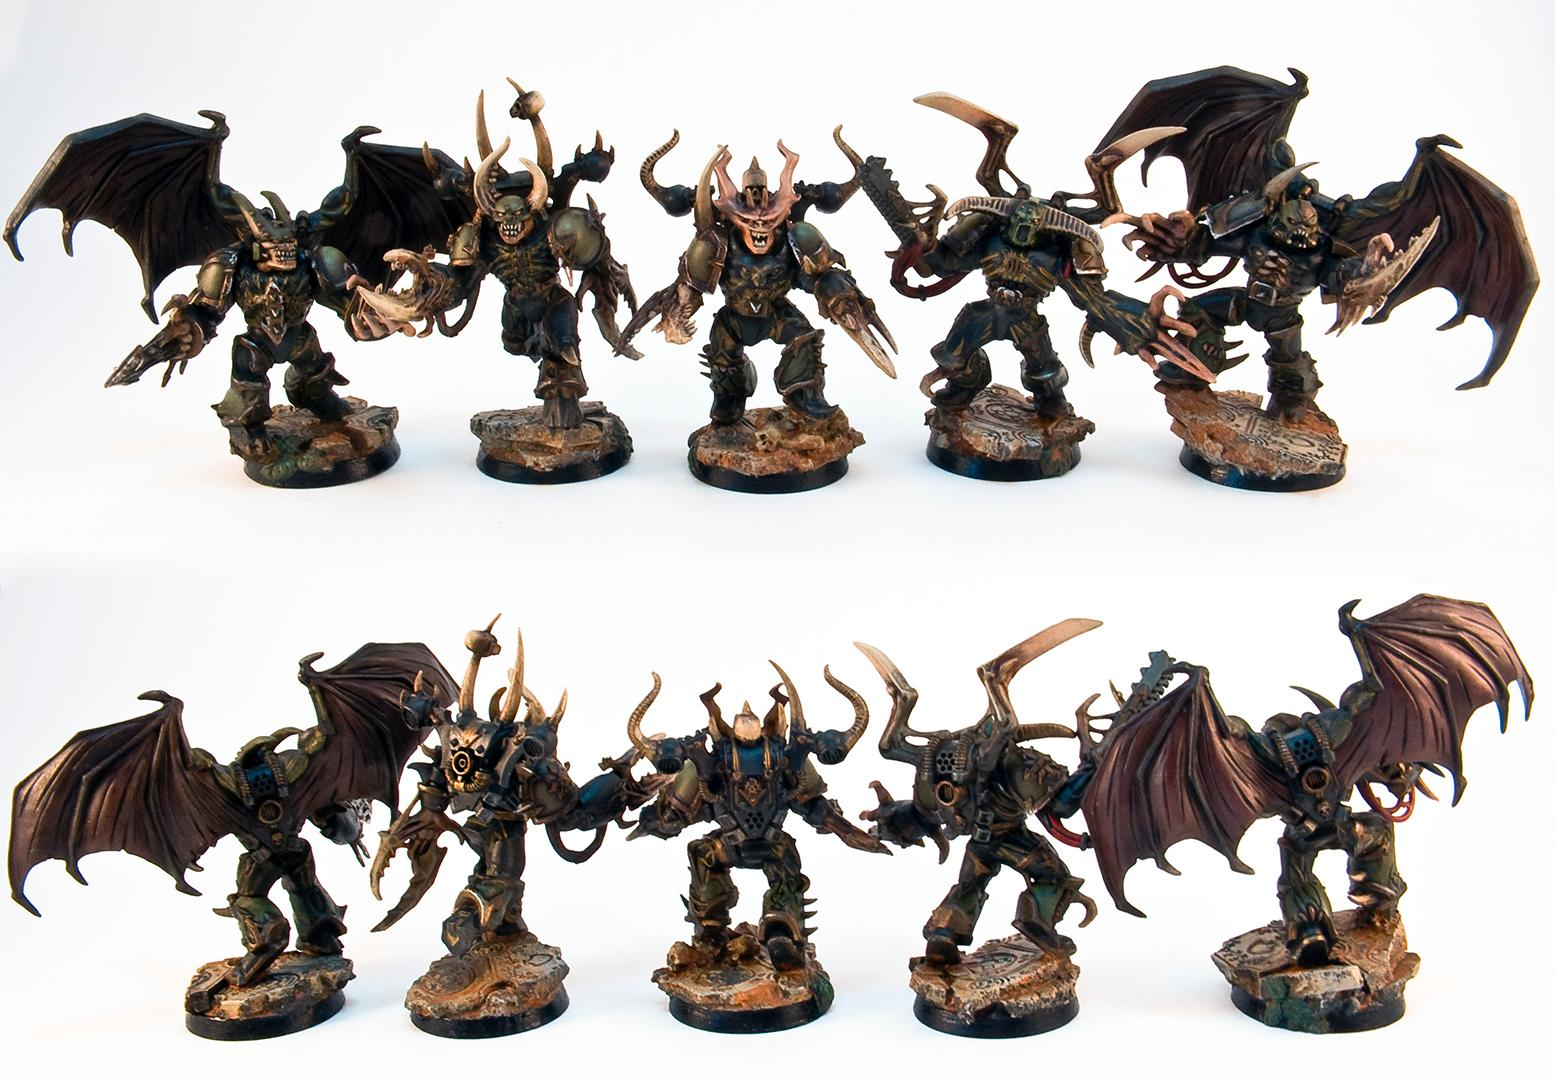 Chaos Space Marines, Possessed Chaos Space Marines, Warhammer 40,000